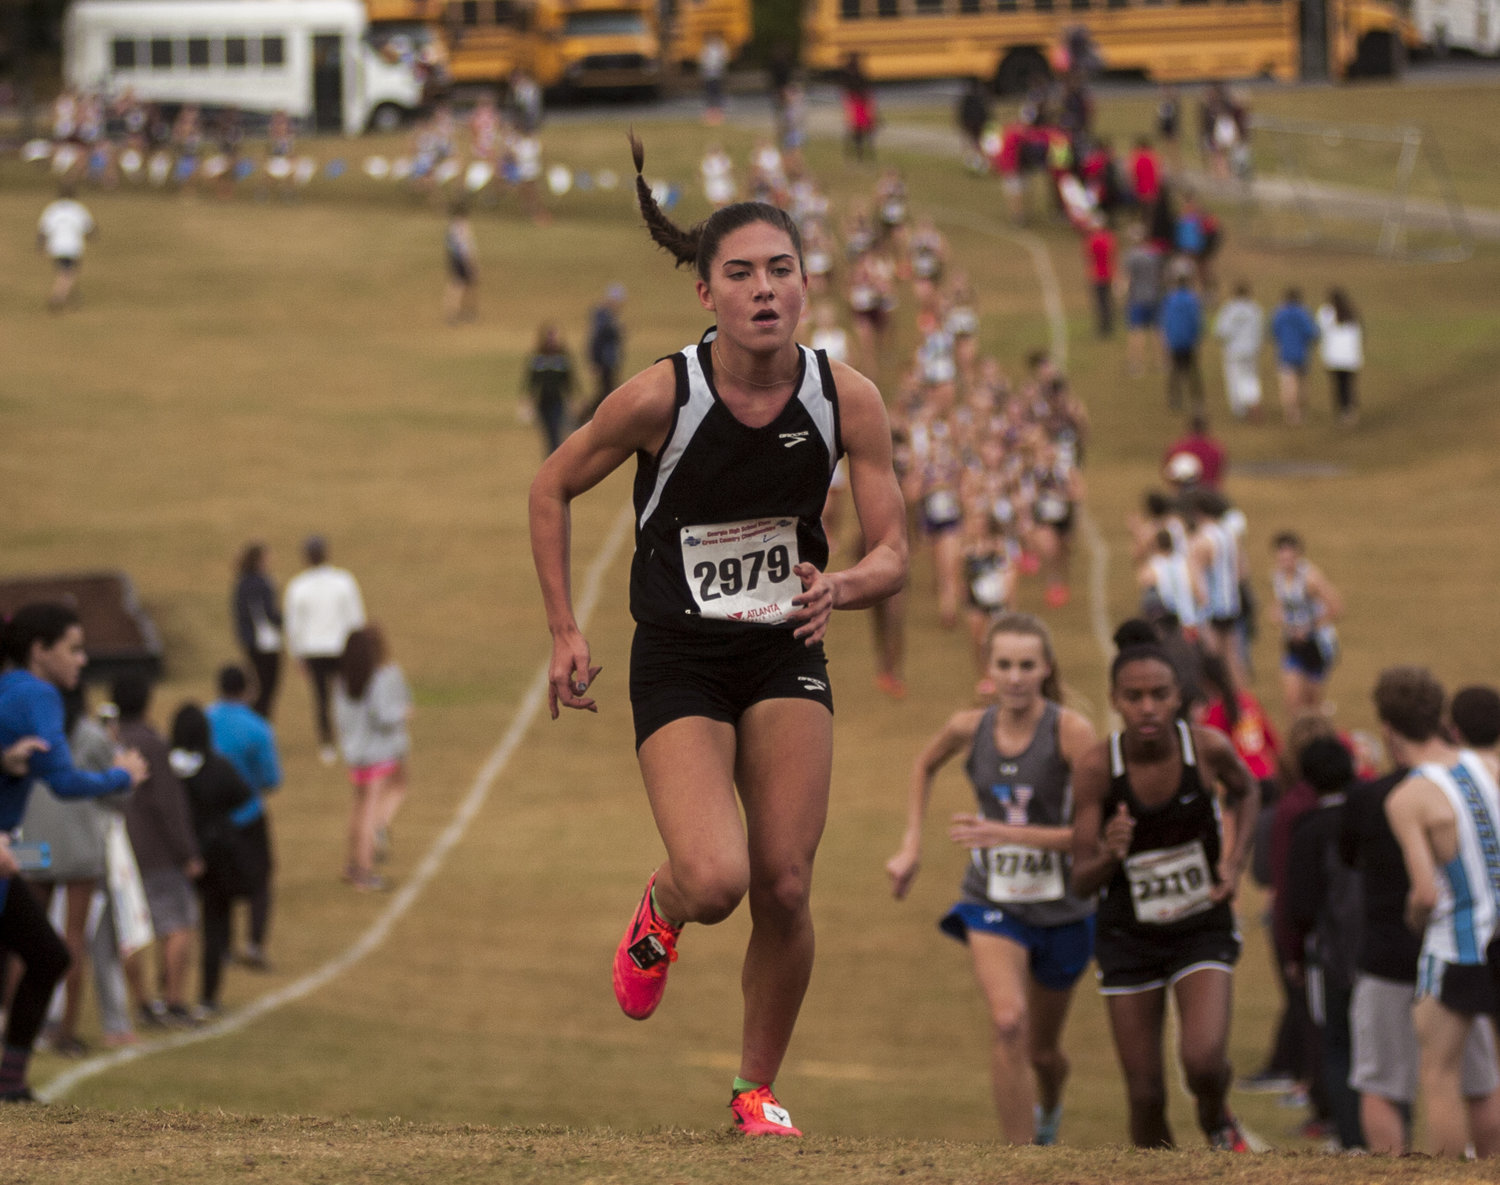 McKenna Trapheagen leads a long line of competitors Friday morning in the GHSA Class 5A state girls cross country championship in Carrollton.